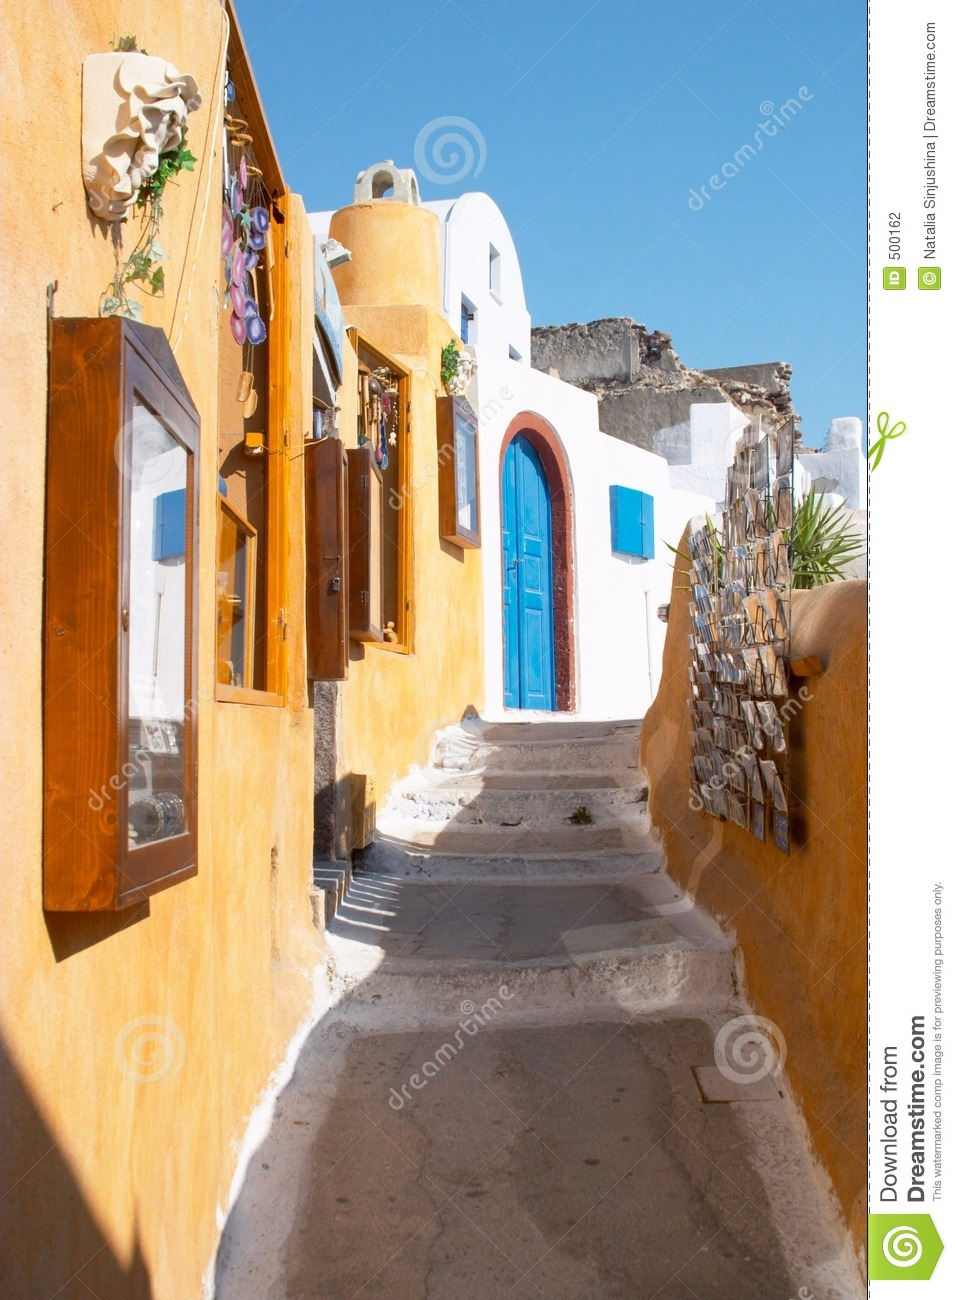 29204 old street wallpapers santorini 957x1300